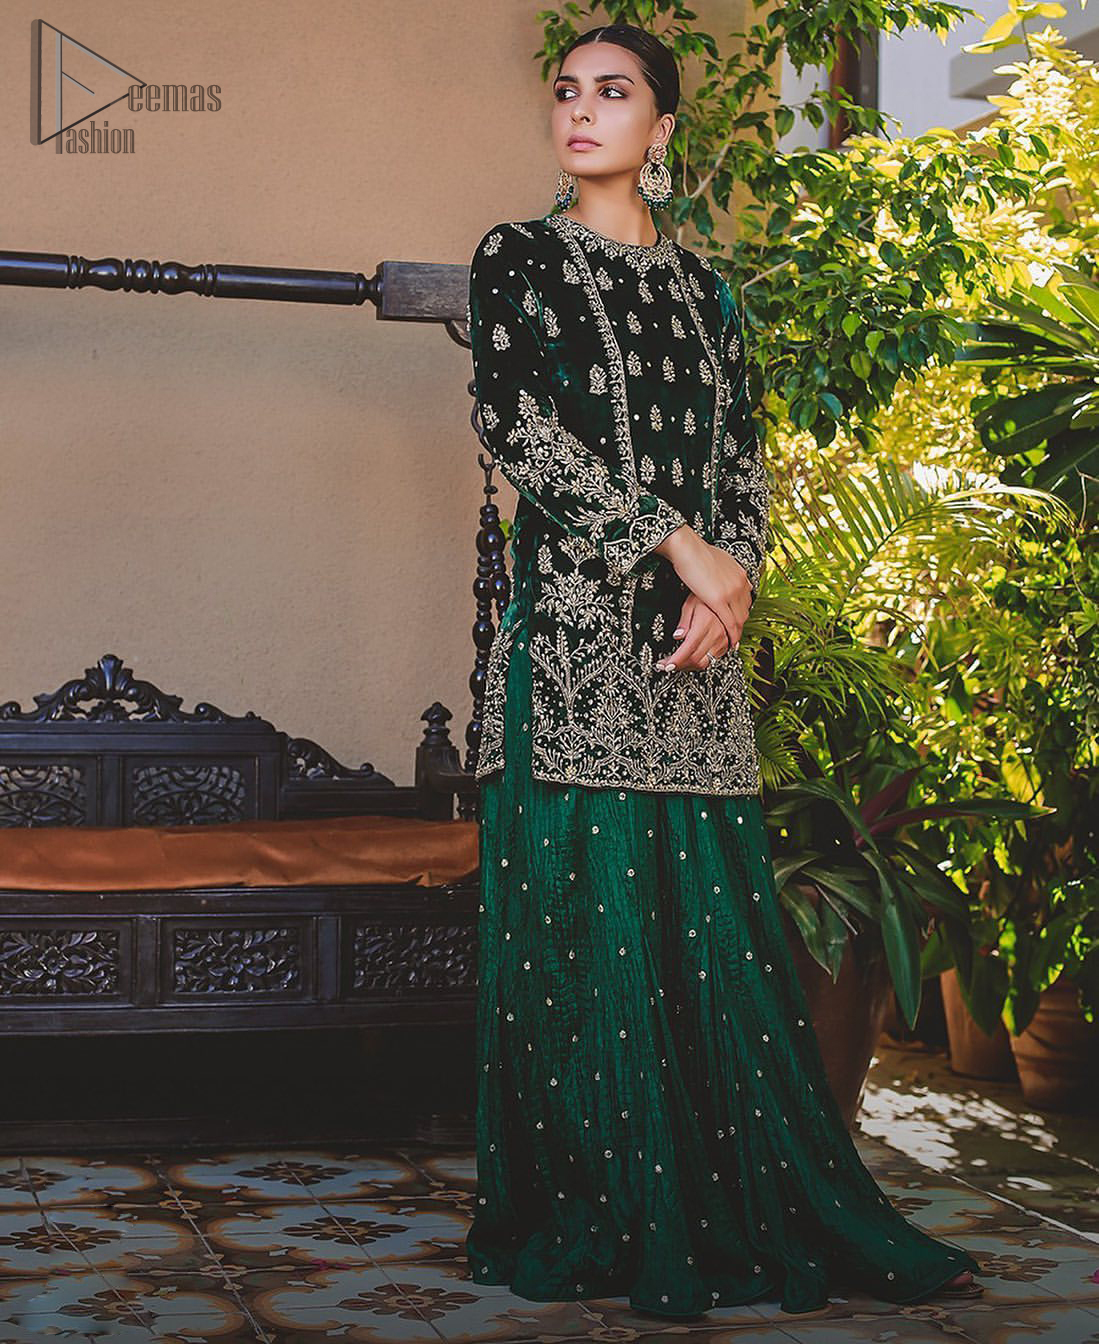 This mehndi outfit is a true example of decorative and ornamental expression stylized in a contemporary way. The dress comes with a bottle green velvet shirt with beautiful embellished motifs on the ground and vertically worked lines and it finished with a thick embellished border with silver zardozi work. Pair it up with bottle green crushed sharara adorned with scattered sequins all over. To complete the look, go with chiffon dupatta decorated with sequins spray all over.